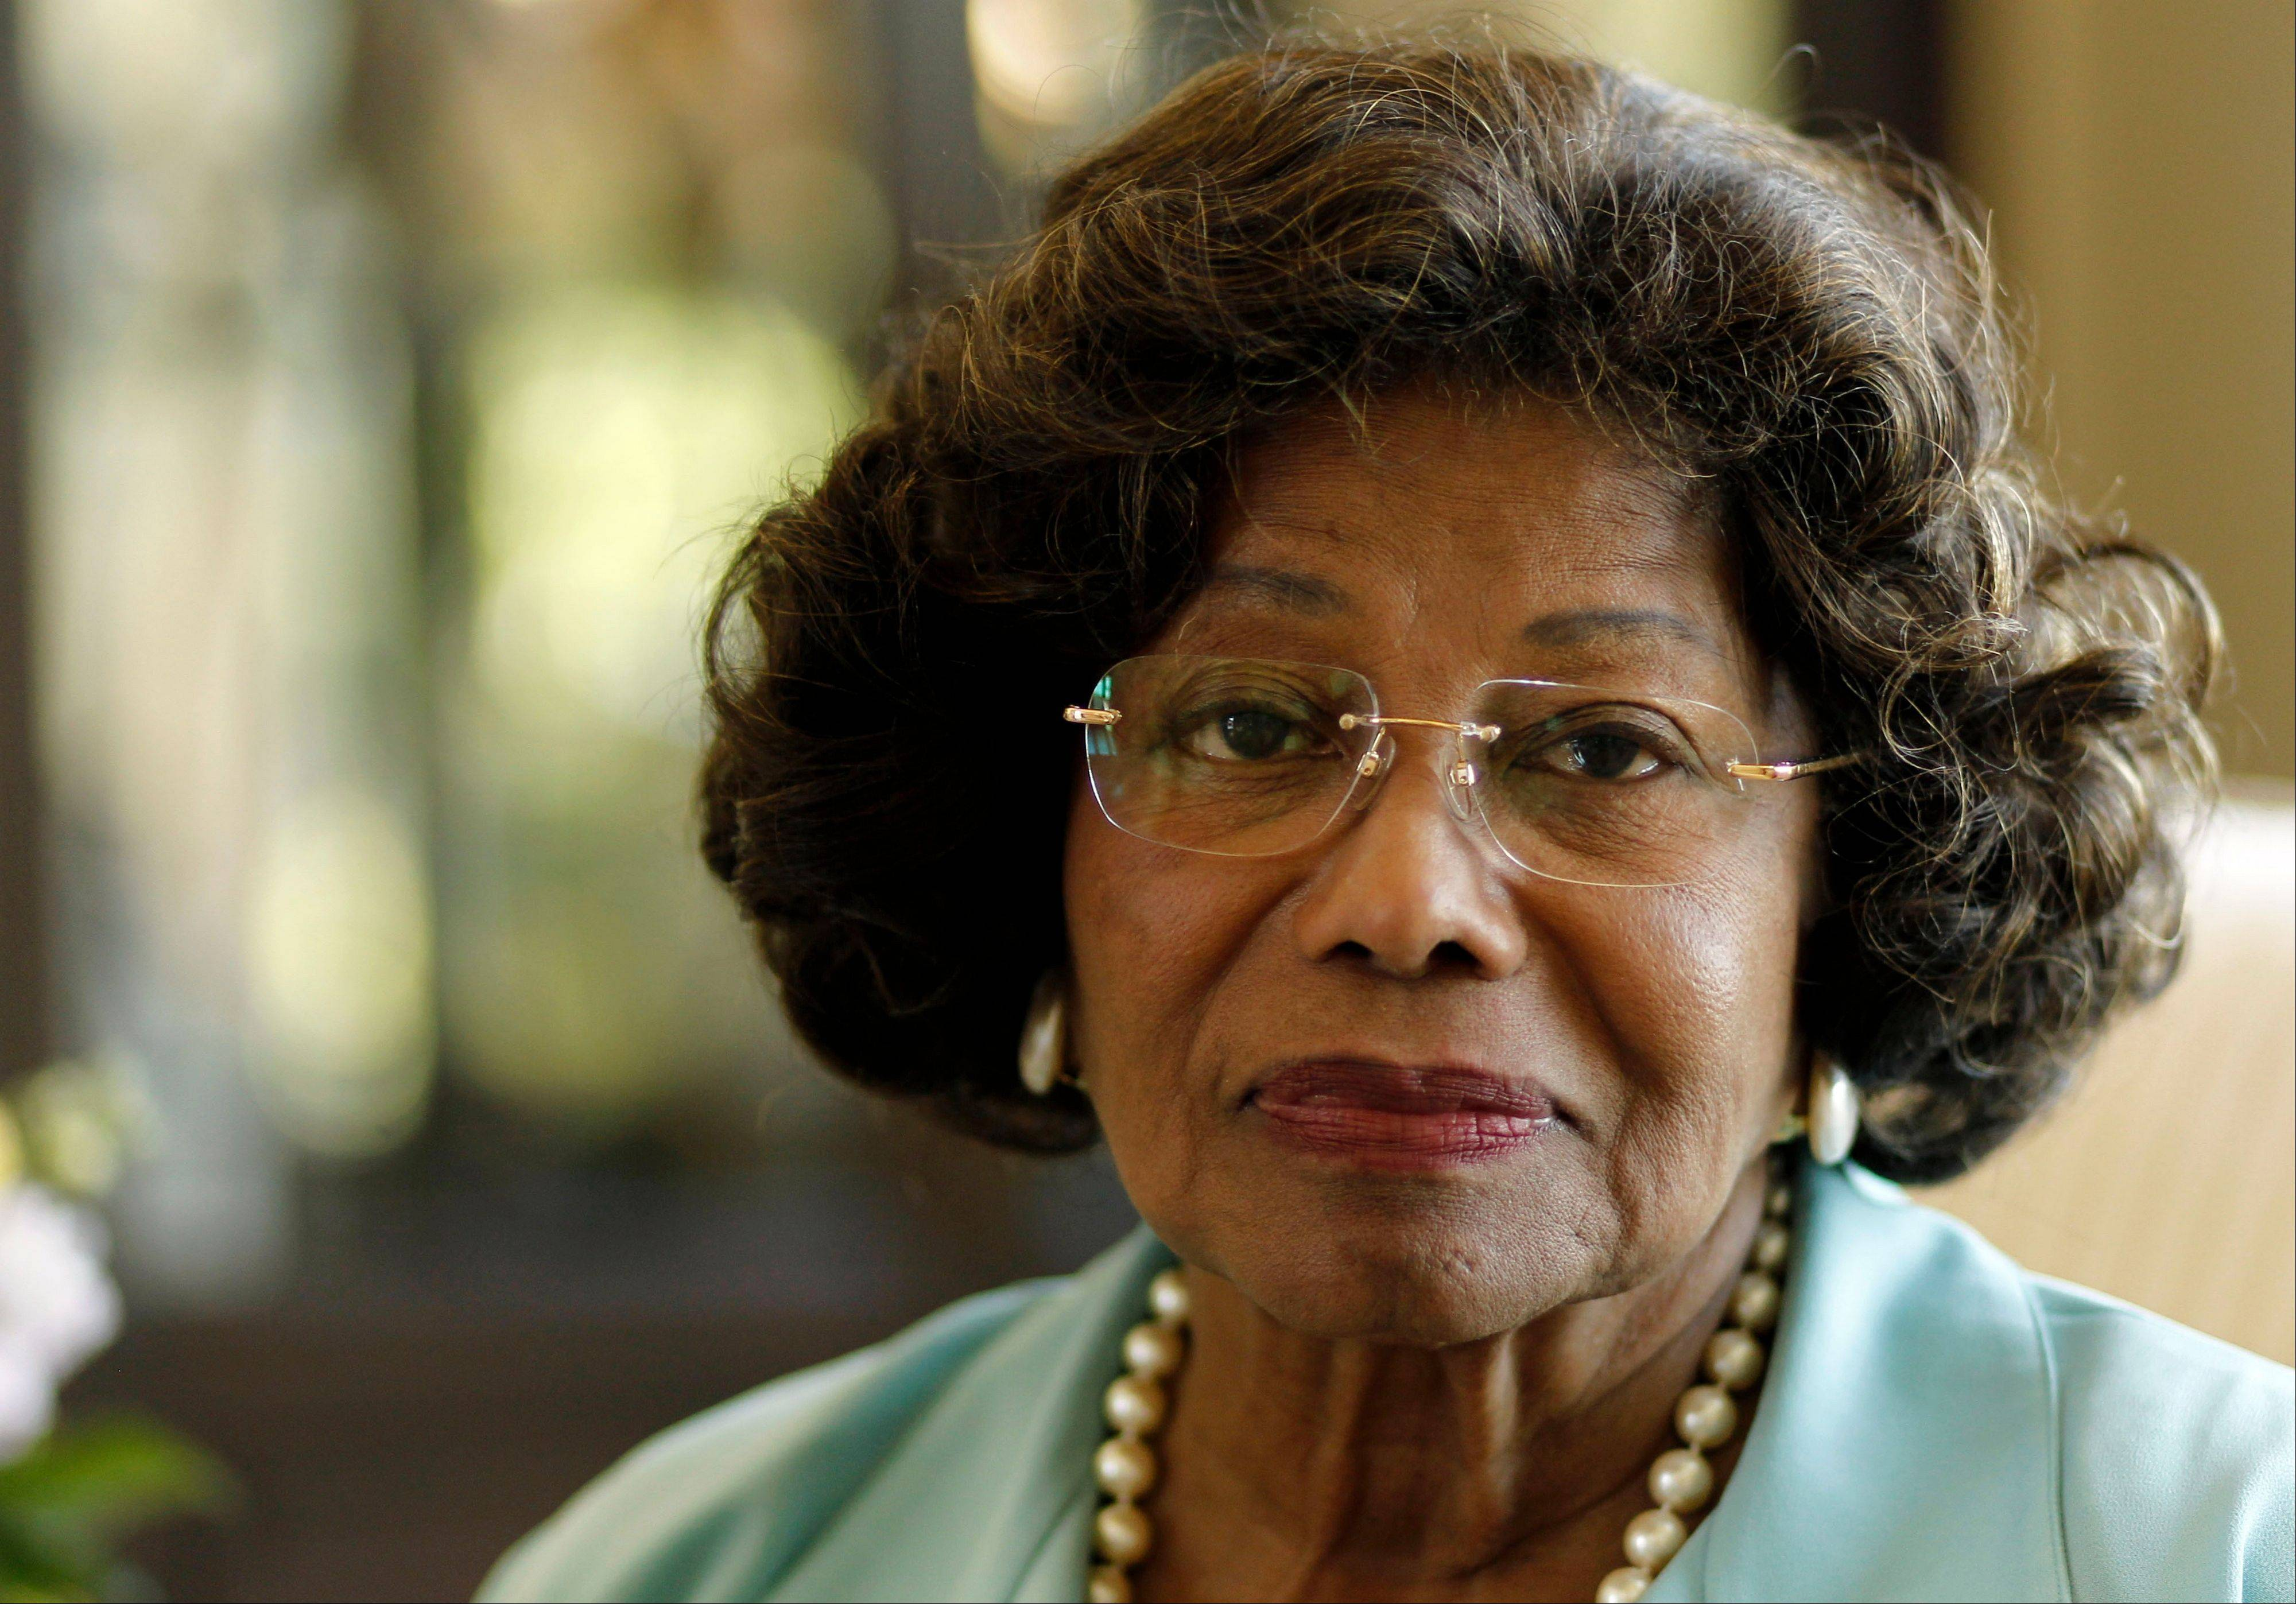 With a jury's refusal to hold a concert promoter responsible for Michael Jackson's death, the late singer's mother, Katherine Jackson, lost perhaps her last best chance to collect millions in damages and place blame for her son's untimely demise.